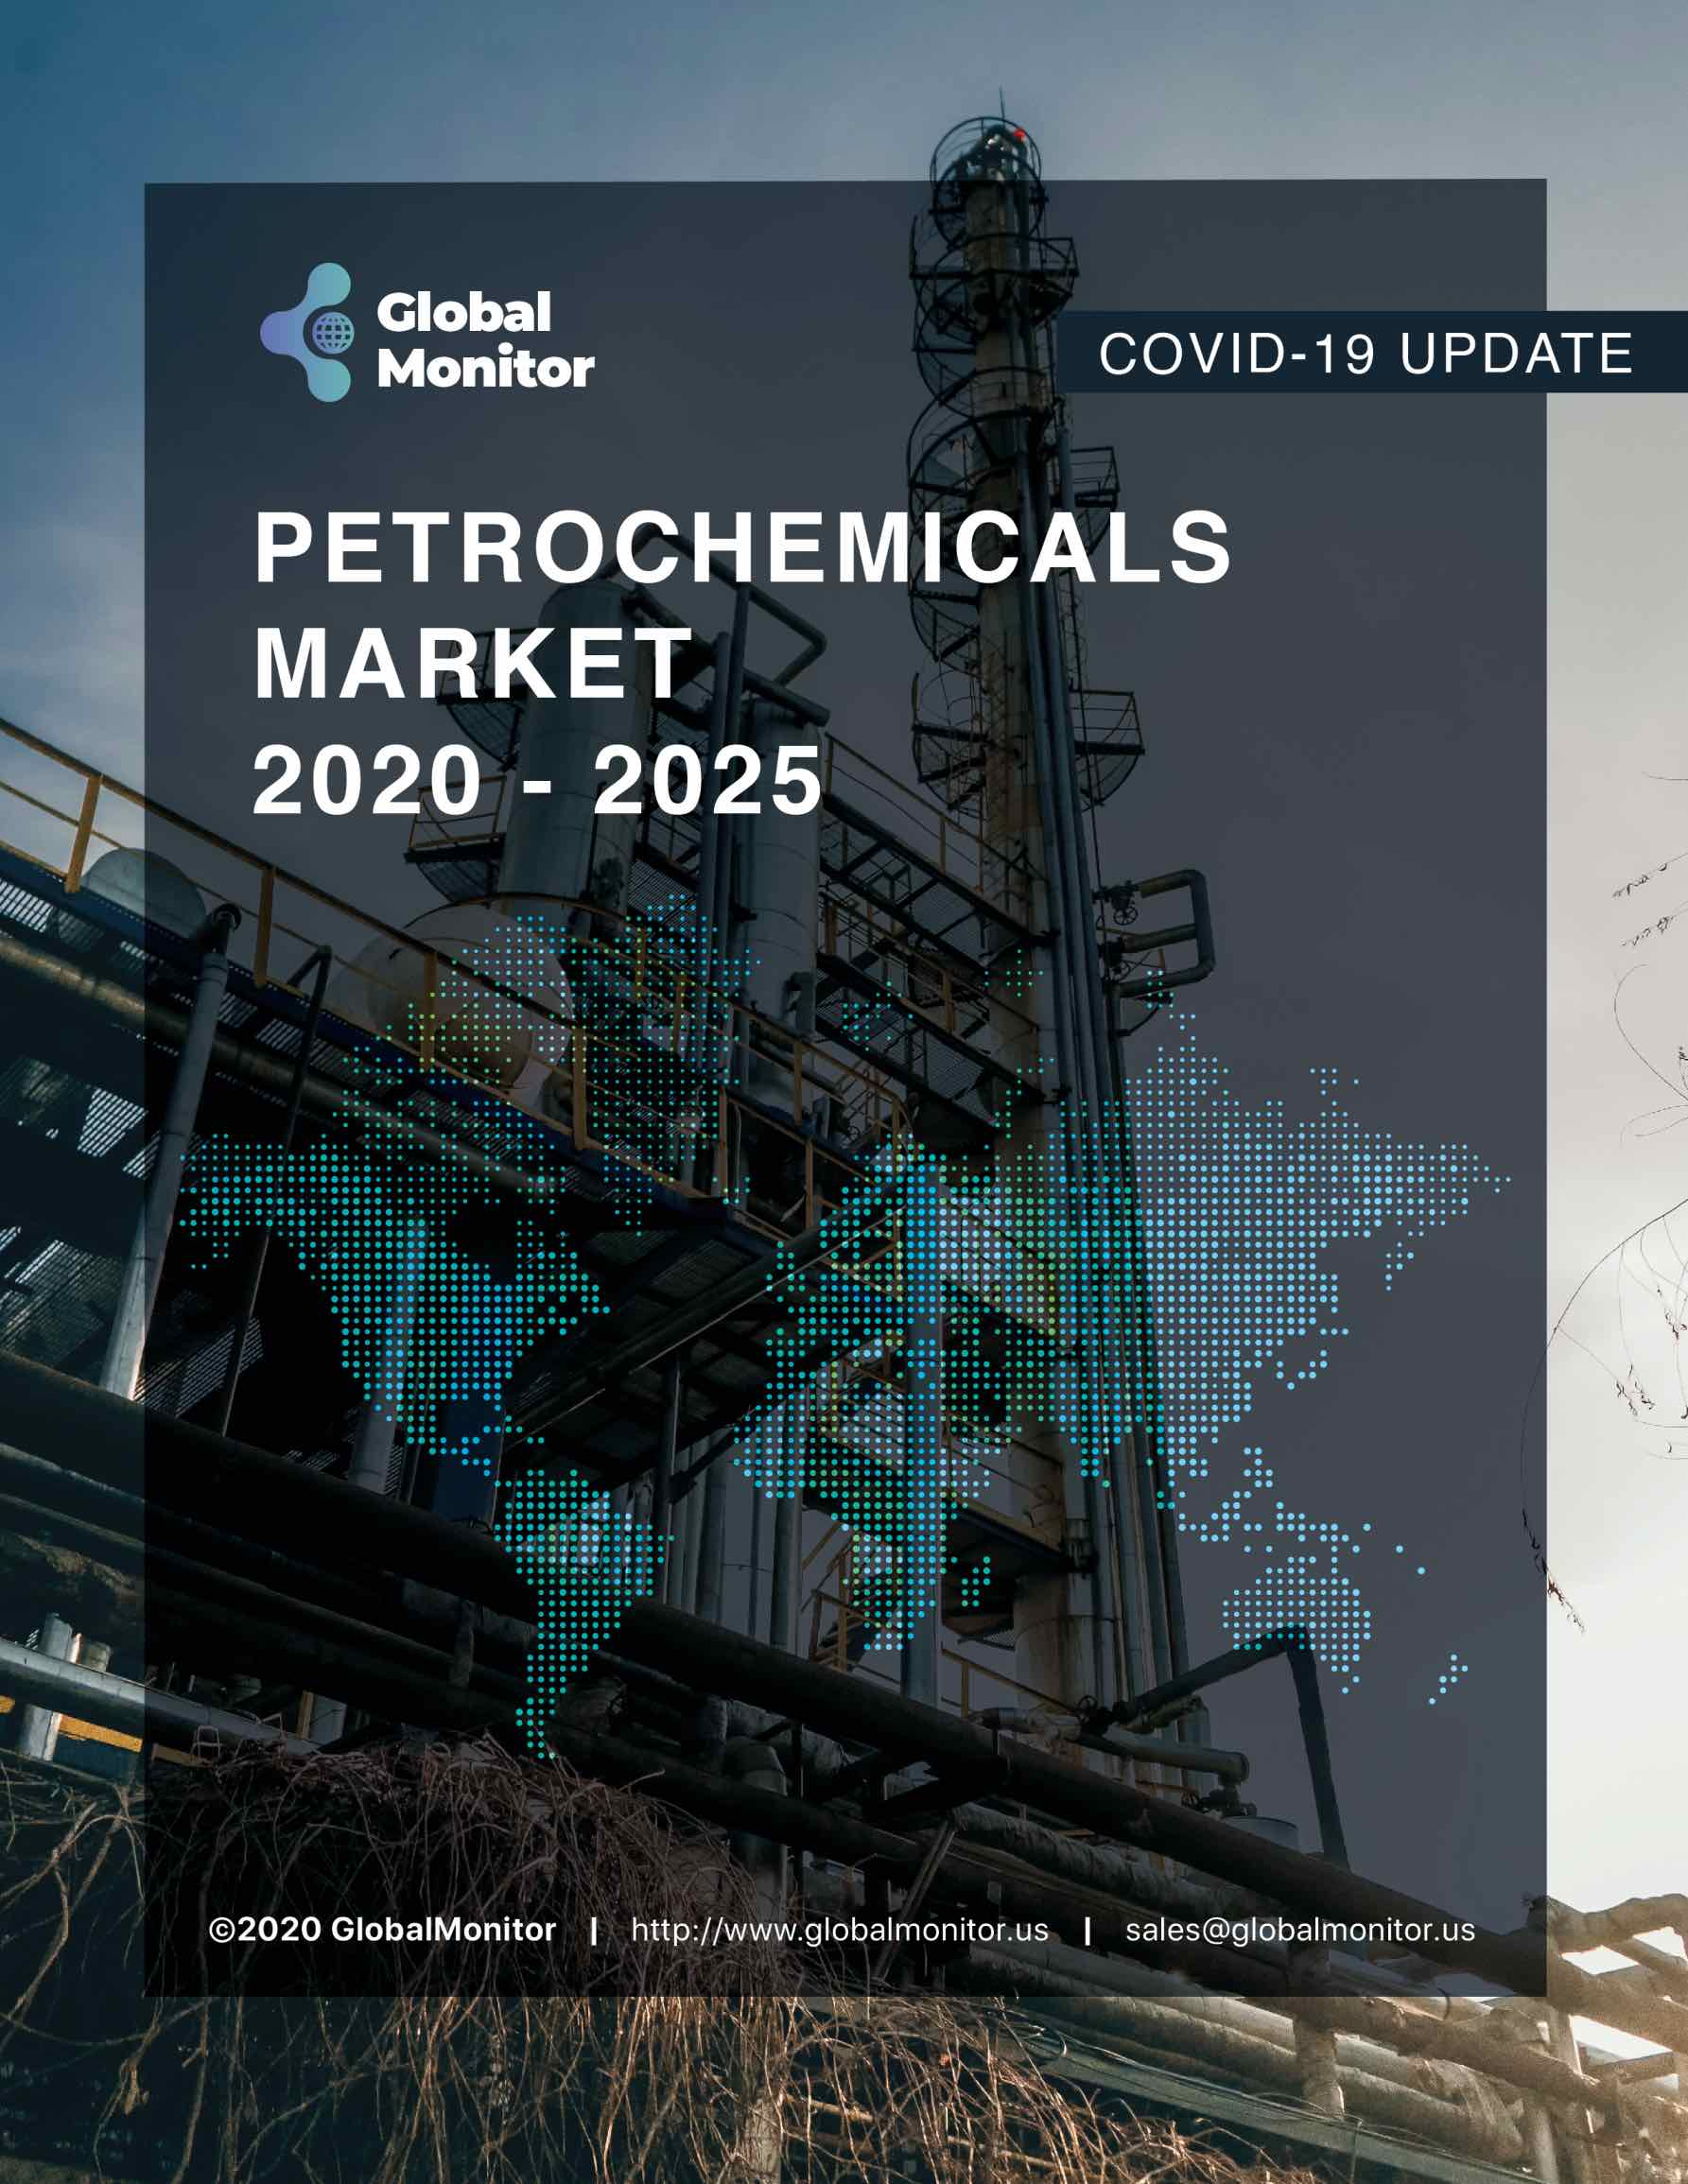 United States Petrochemicals Market Report With COVID-19 Analysis (2020-2025)